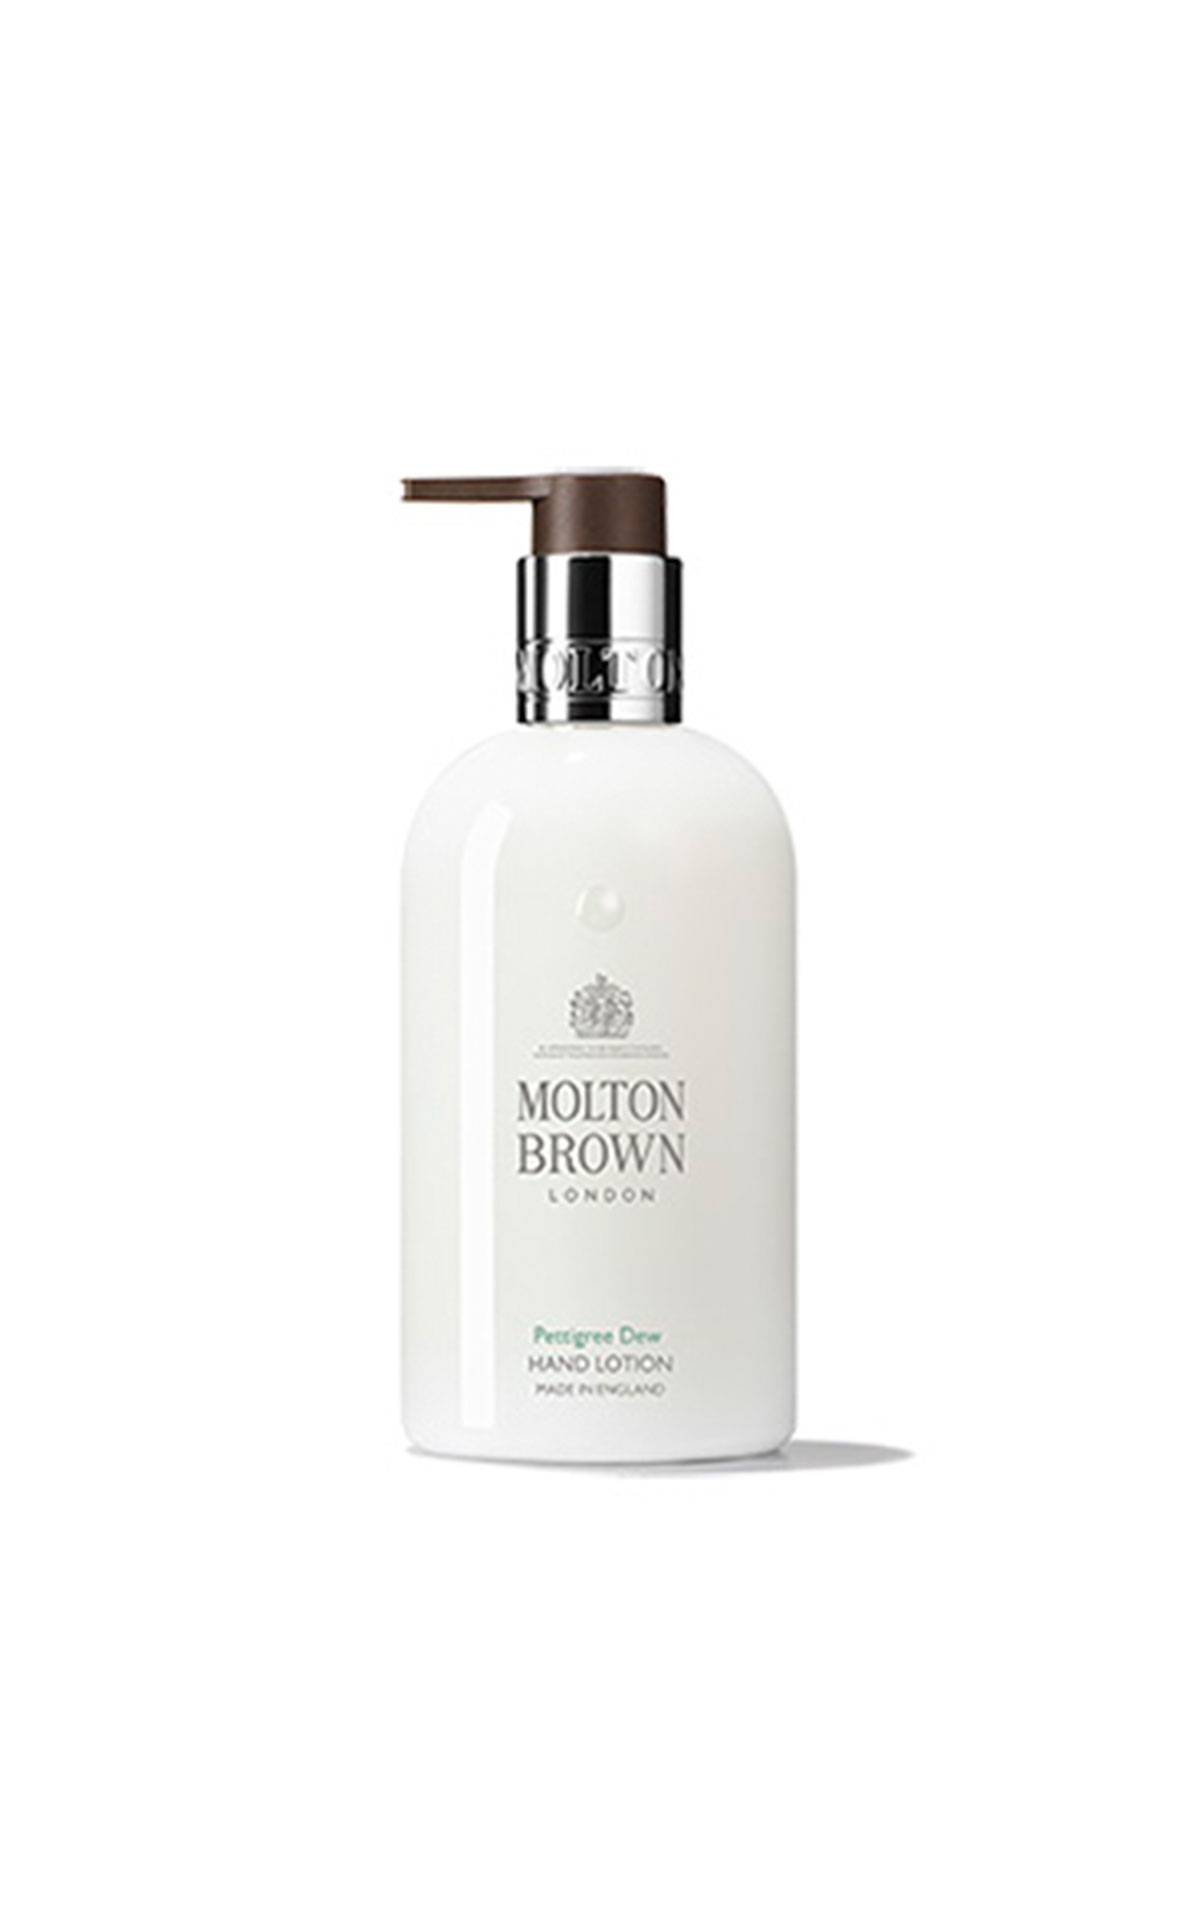 Molton Brown Pettigree Dew hand lotion 300ml from Bicester Village